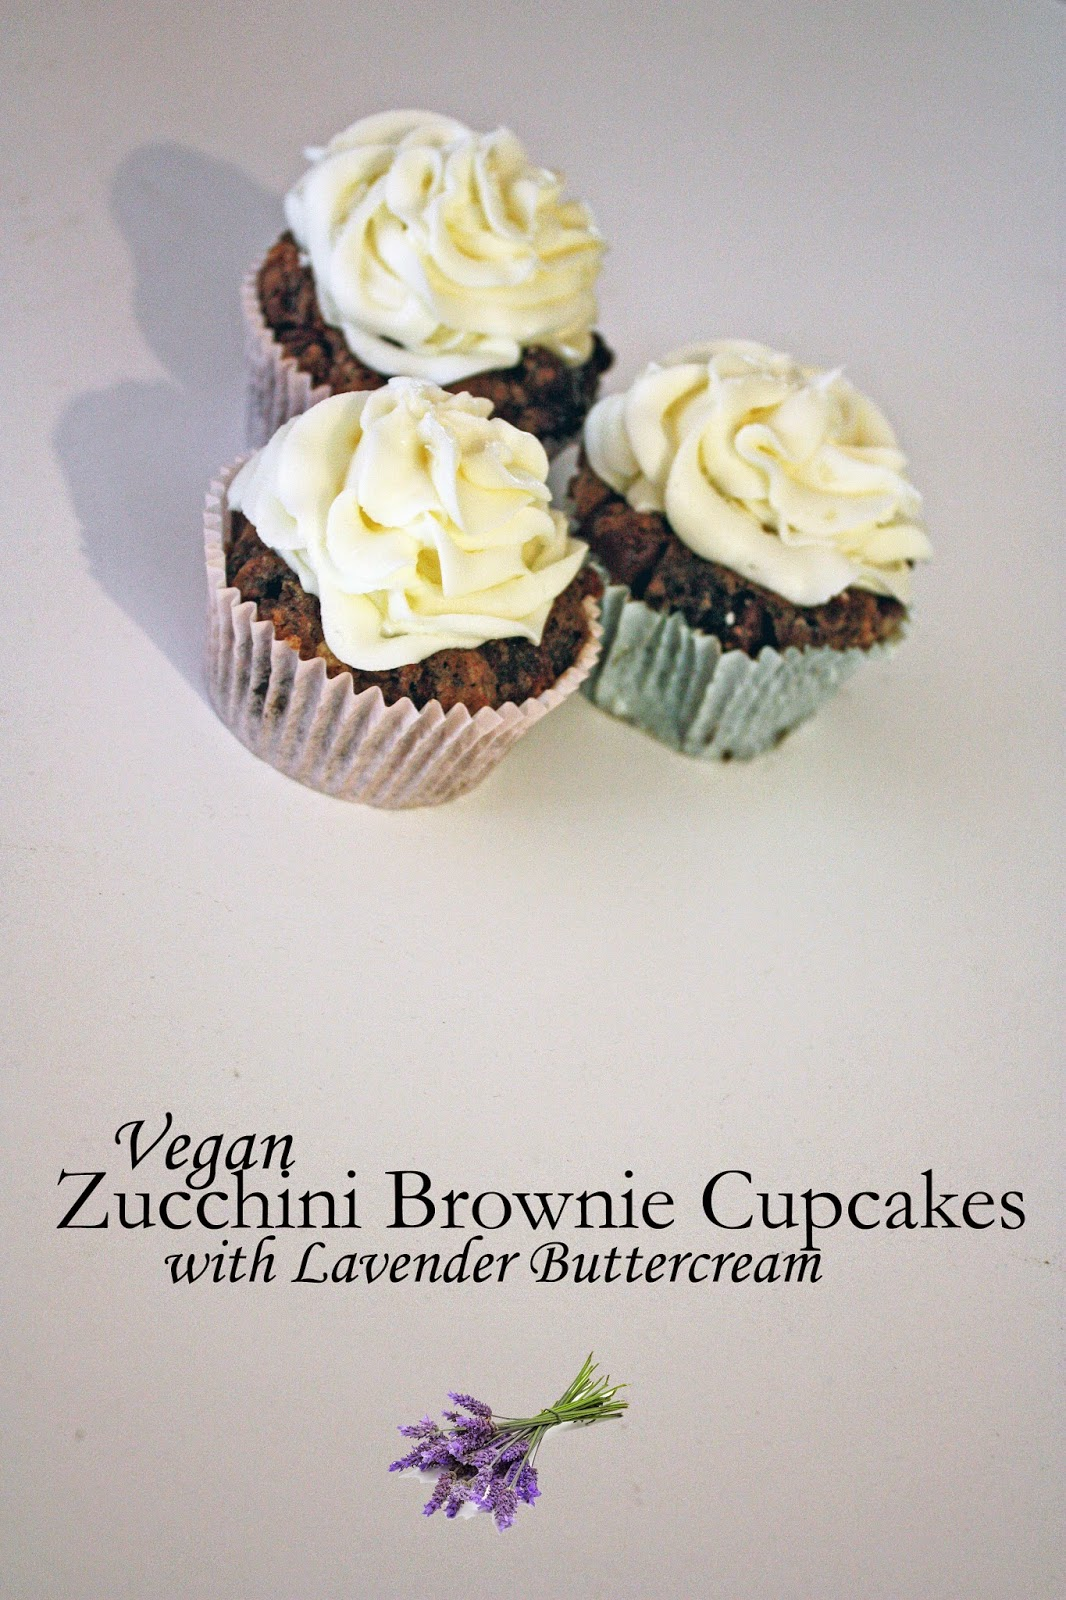 zucchini cupcakes with lavender buttercream